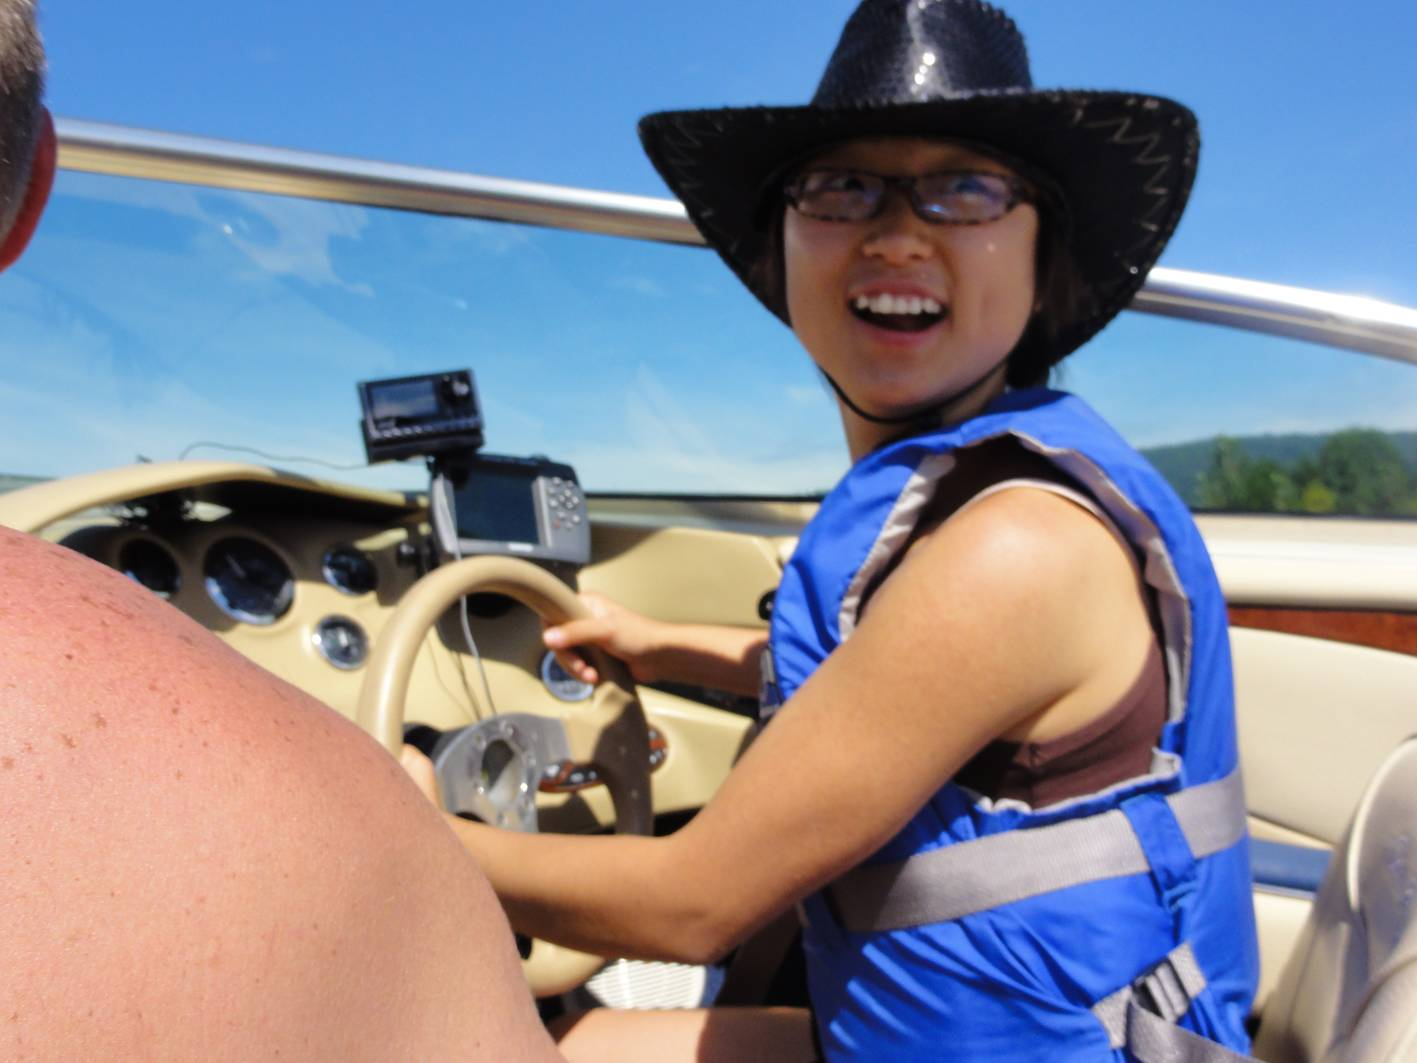 Picture:  Panda had her turn at the helm on the Fraser River, B.C., Canada